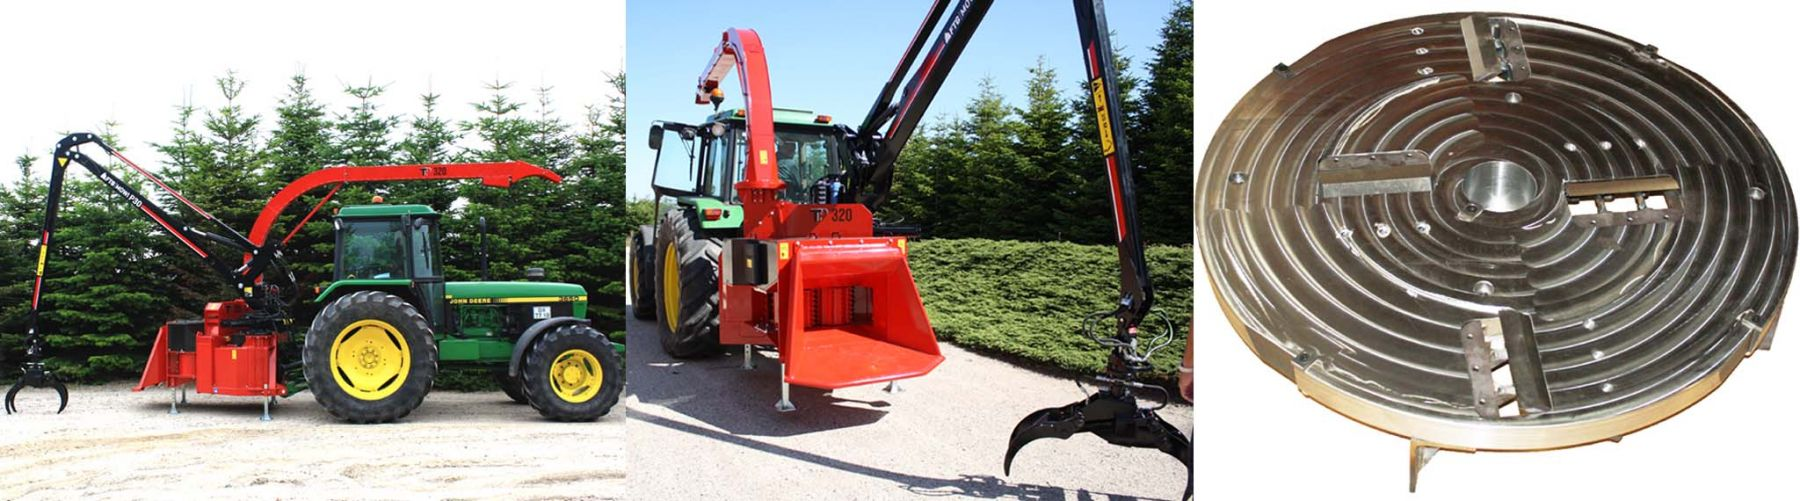 Brand New Tp 320 Big Biomass Chipper Comes on Sale